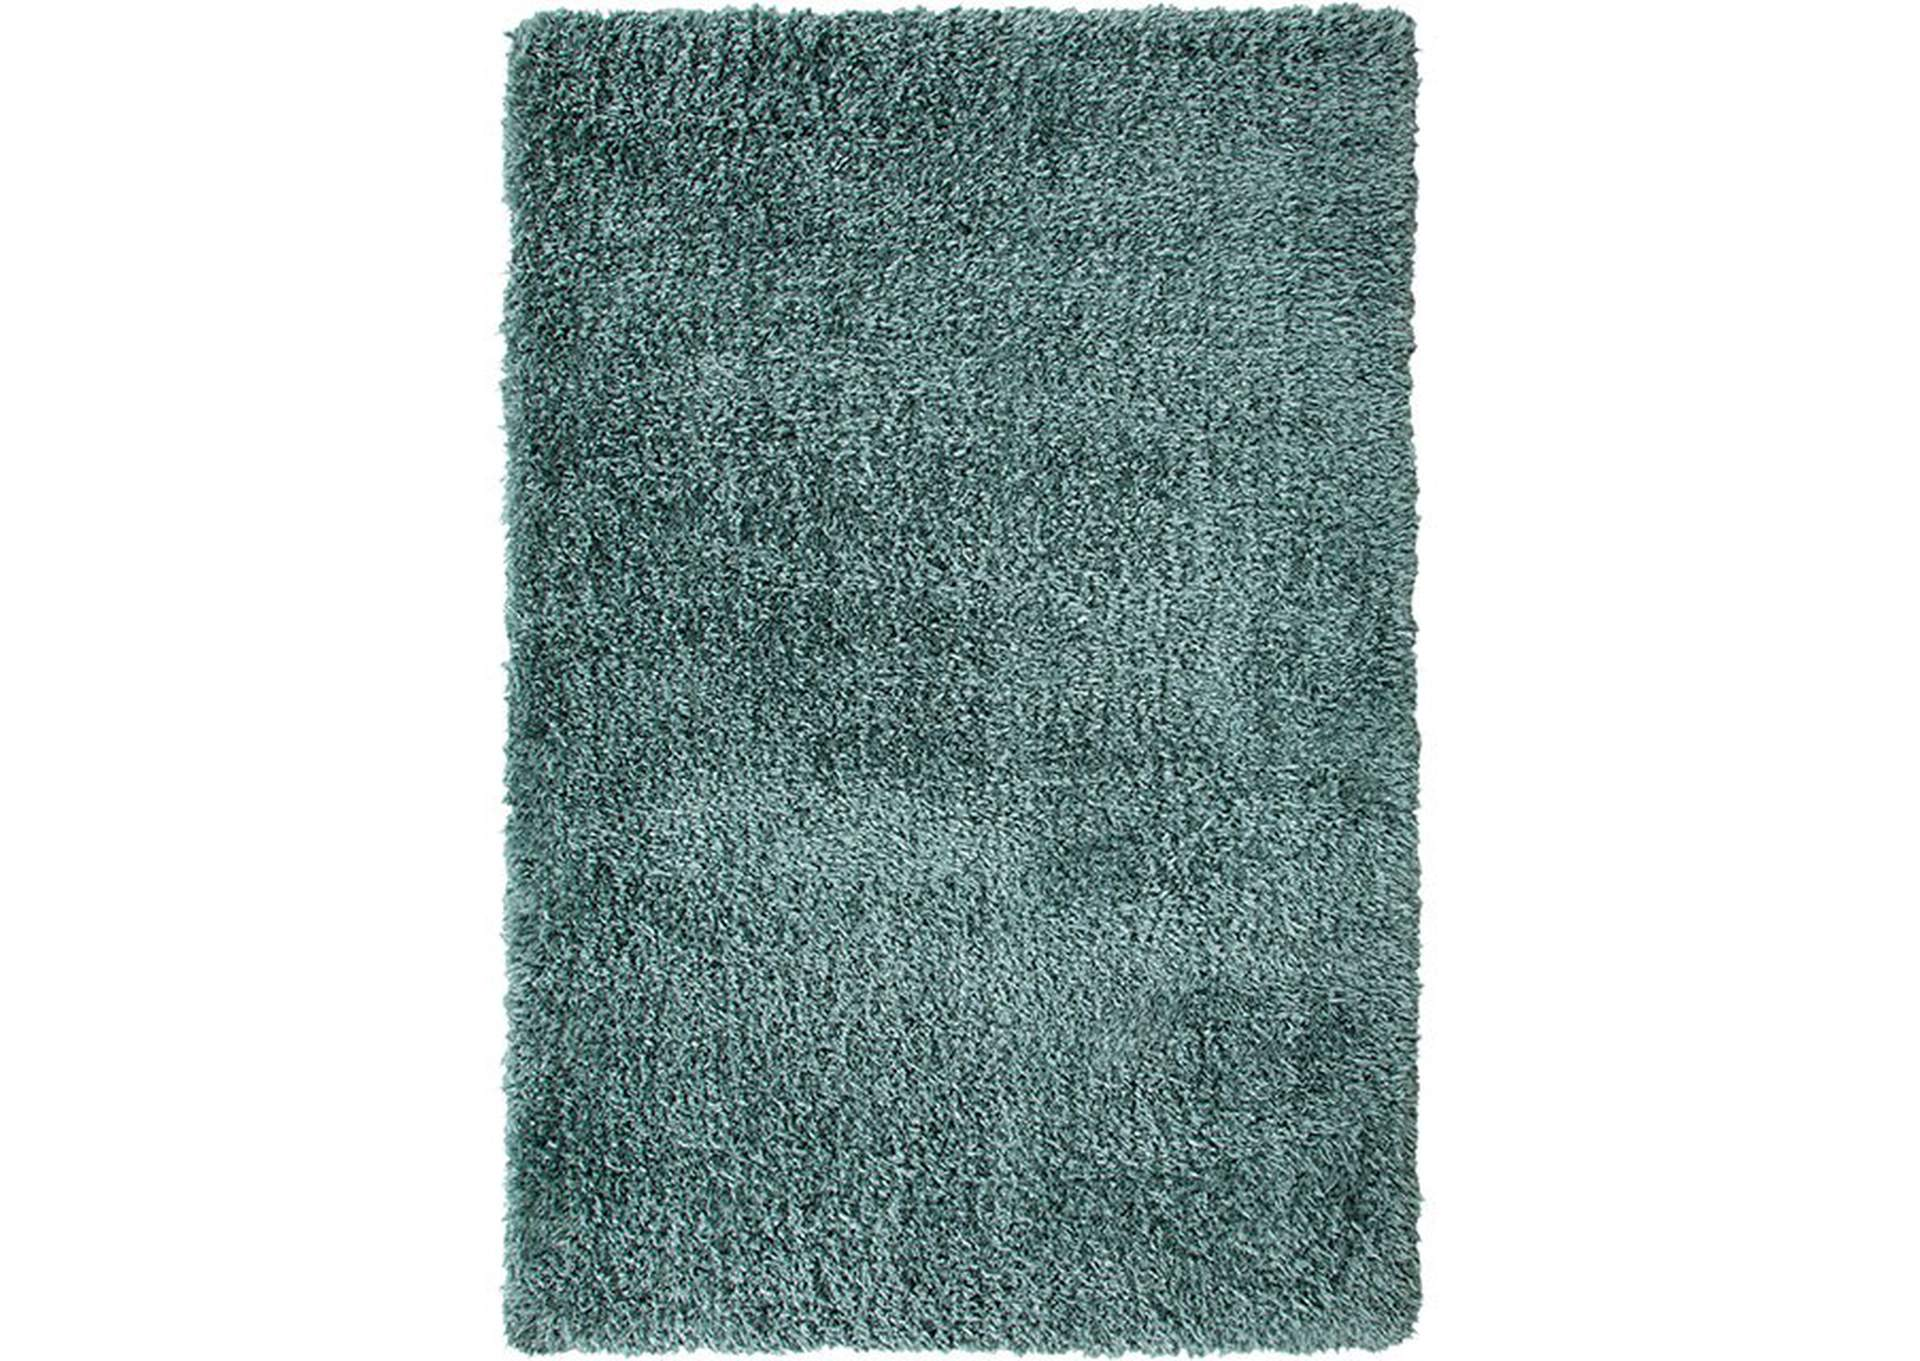 Sason Green Area Rug,Furniture of America